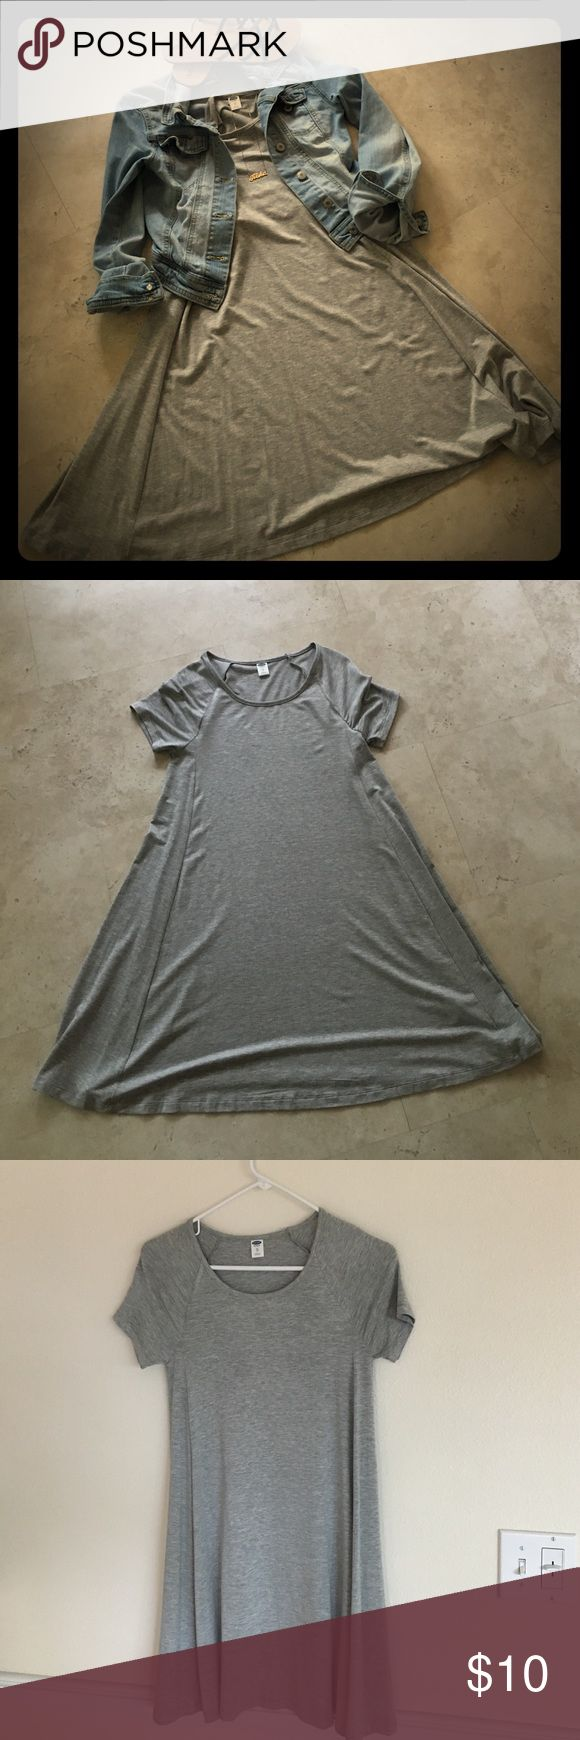 Comfy grey jersey tee dress Way comfortable jersey tee dress from Ild Navy. Only worn once. Super cute super cozy. Old Navy Dresses